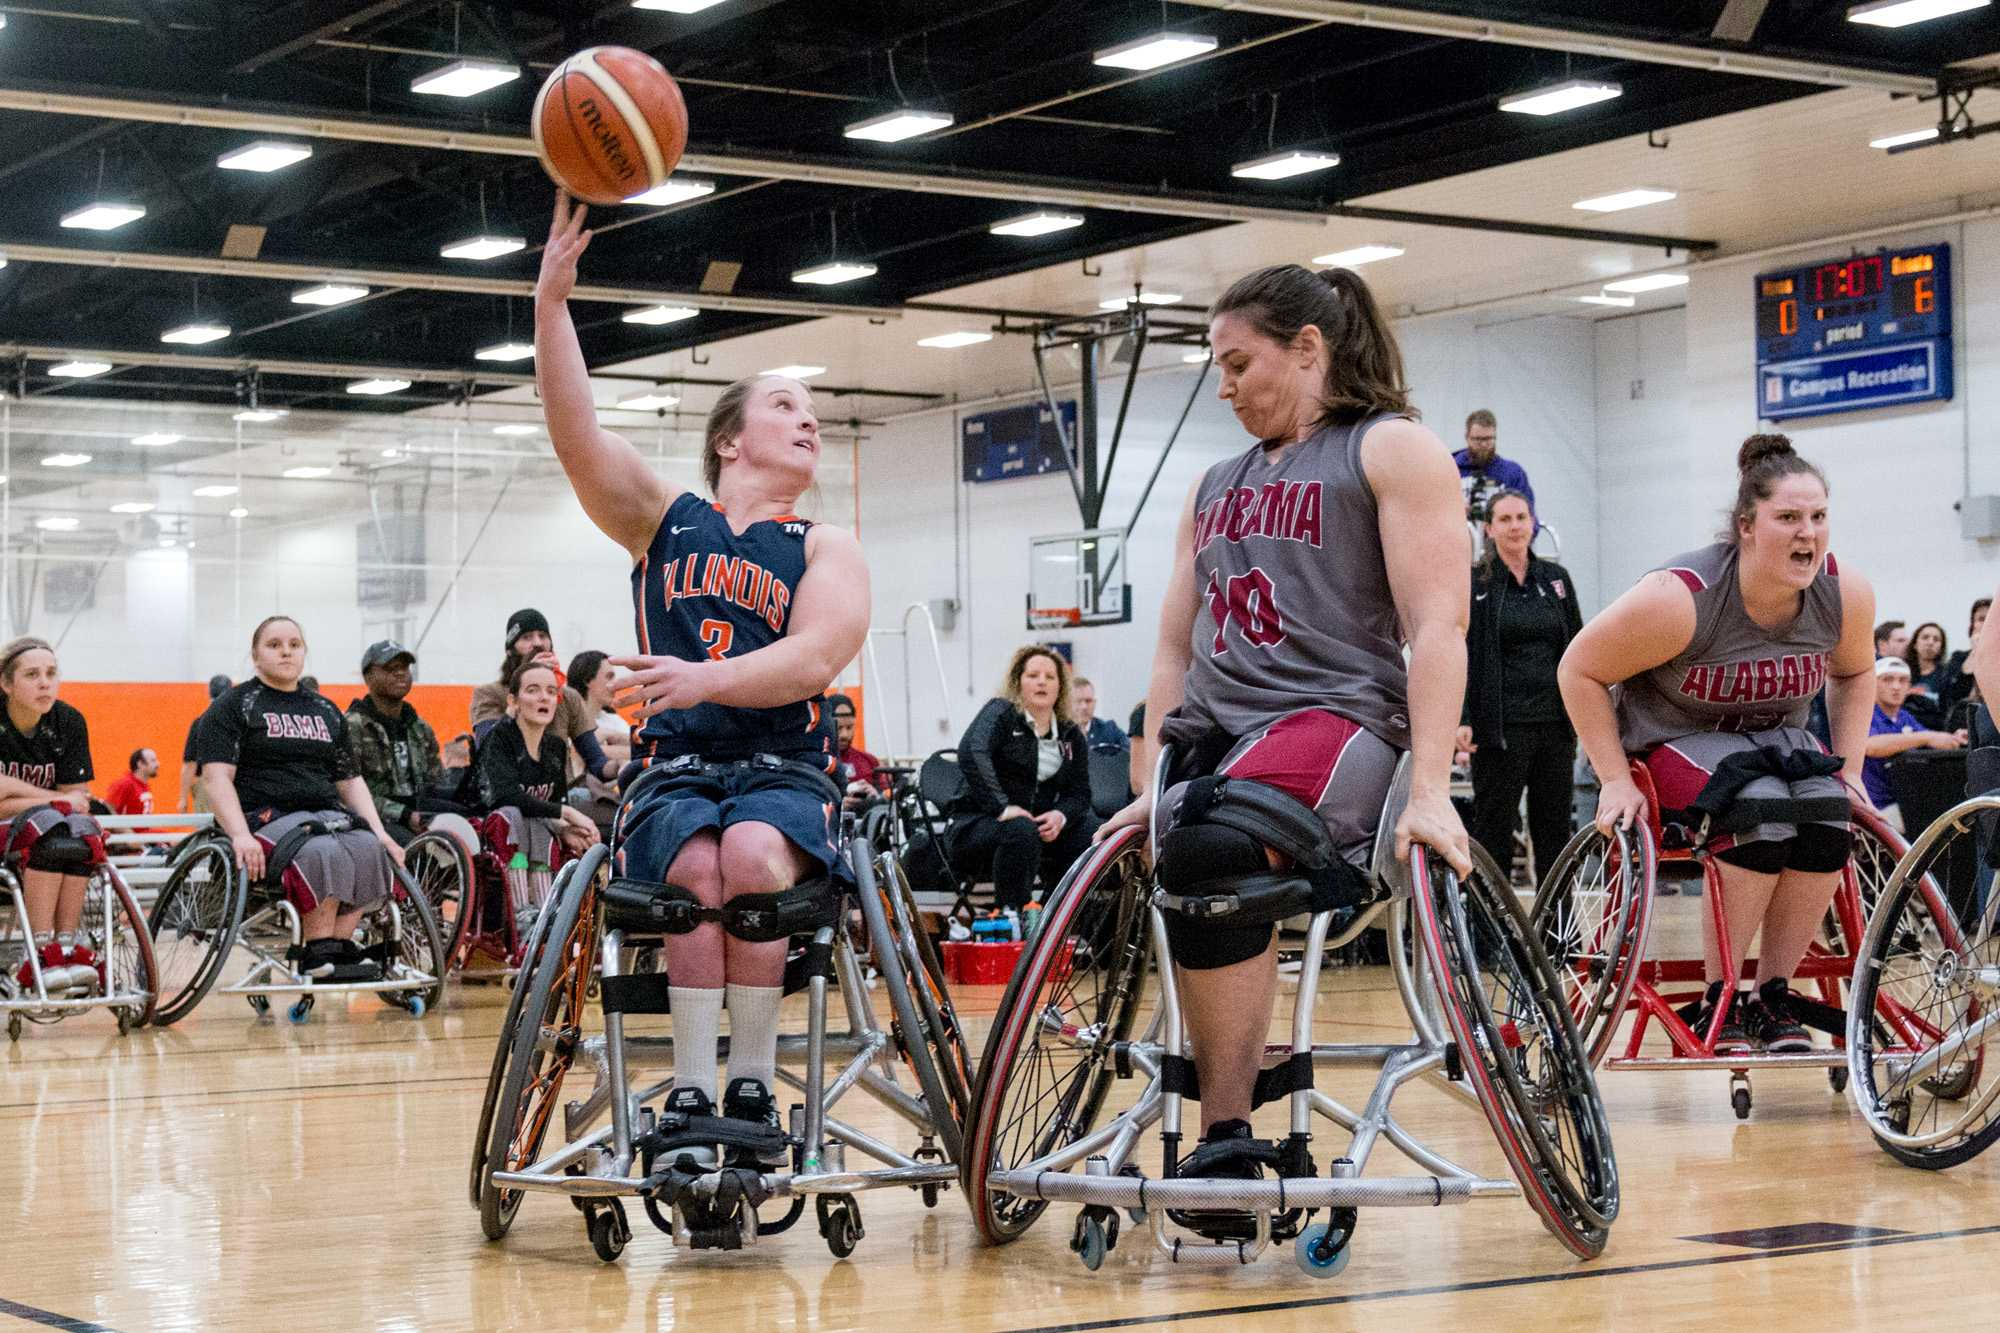 Illinois' Gail Gaeng (3) attempts a shot during the wheelchair basketball game v. Alabama at the ARC on Friday, Feb. 12, 2016. Illinois won 56-47.